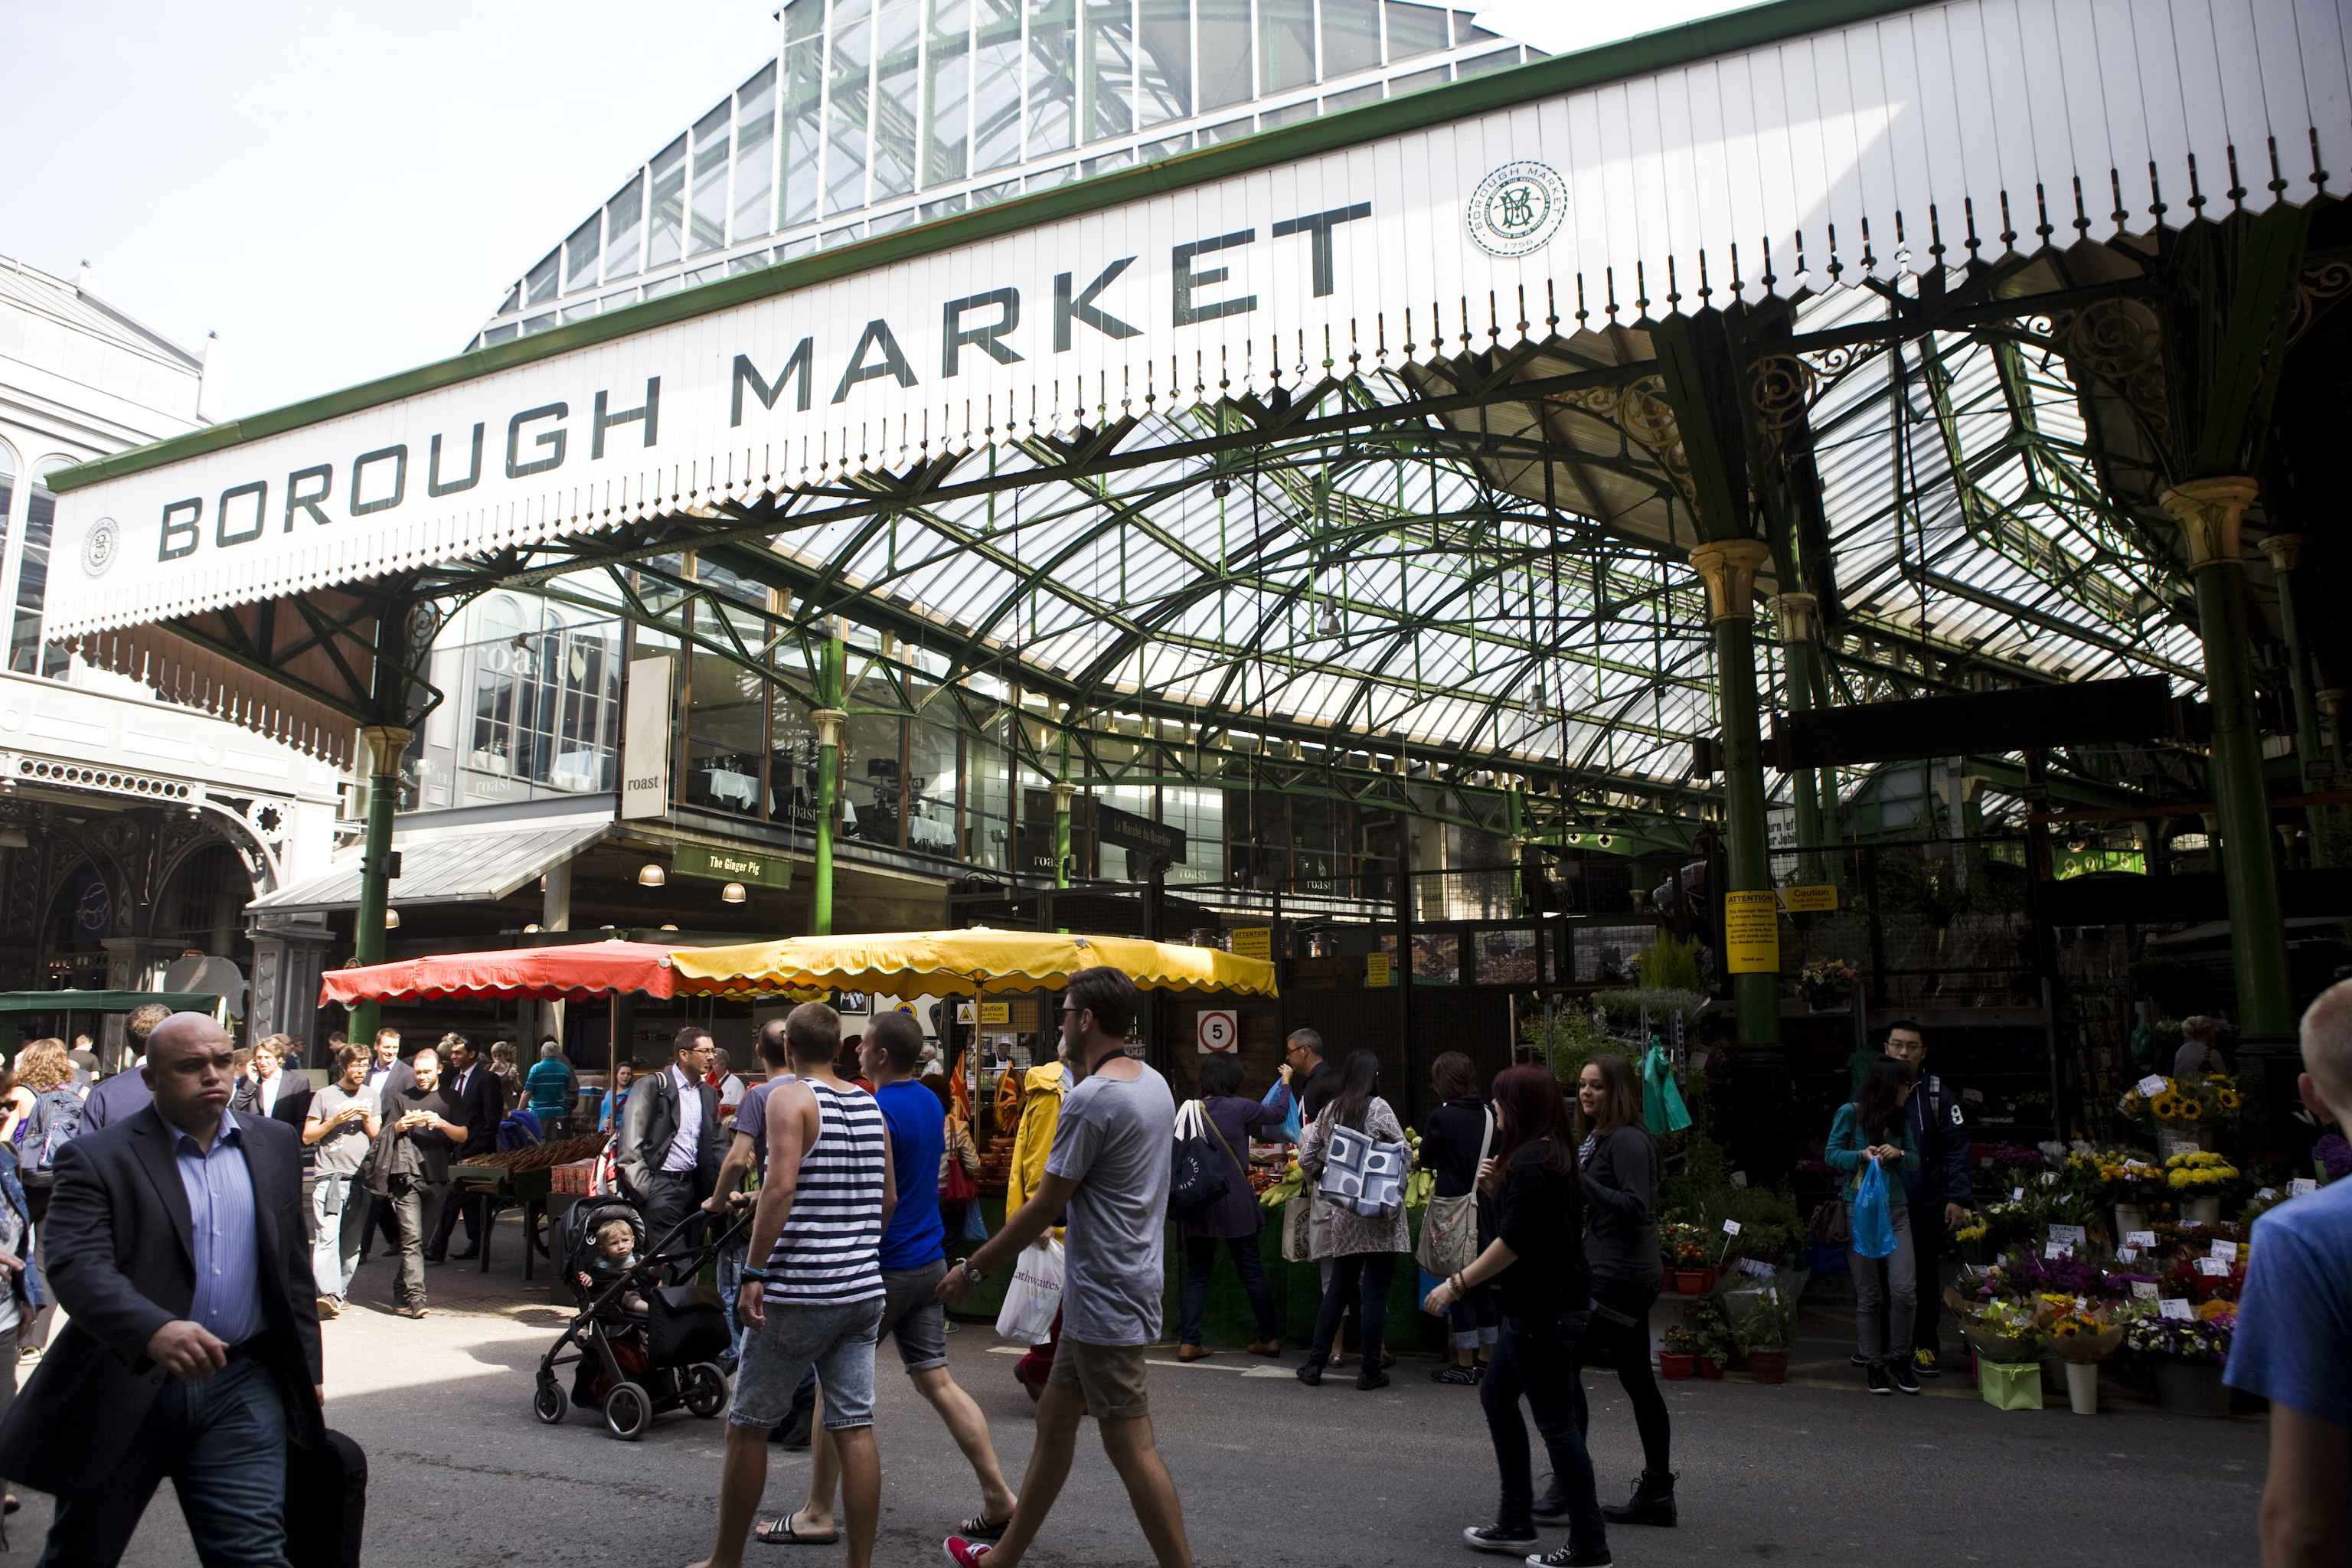 Borough-Market-Image1